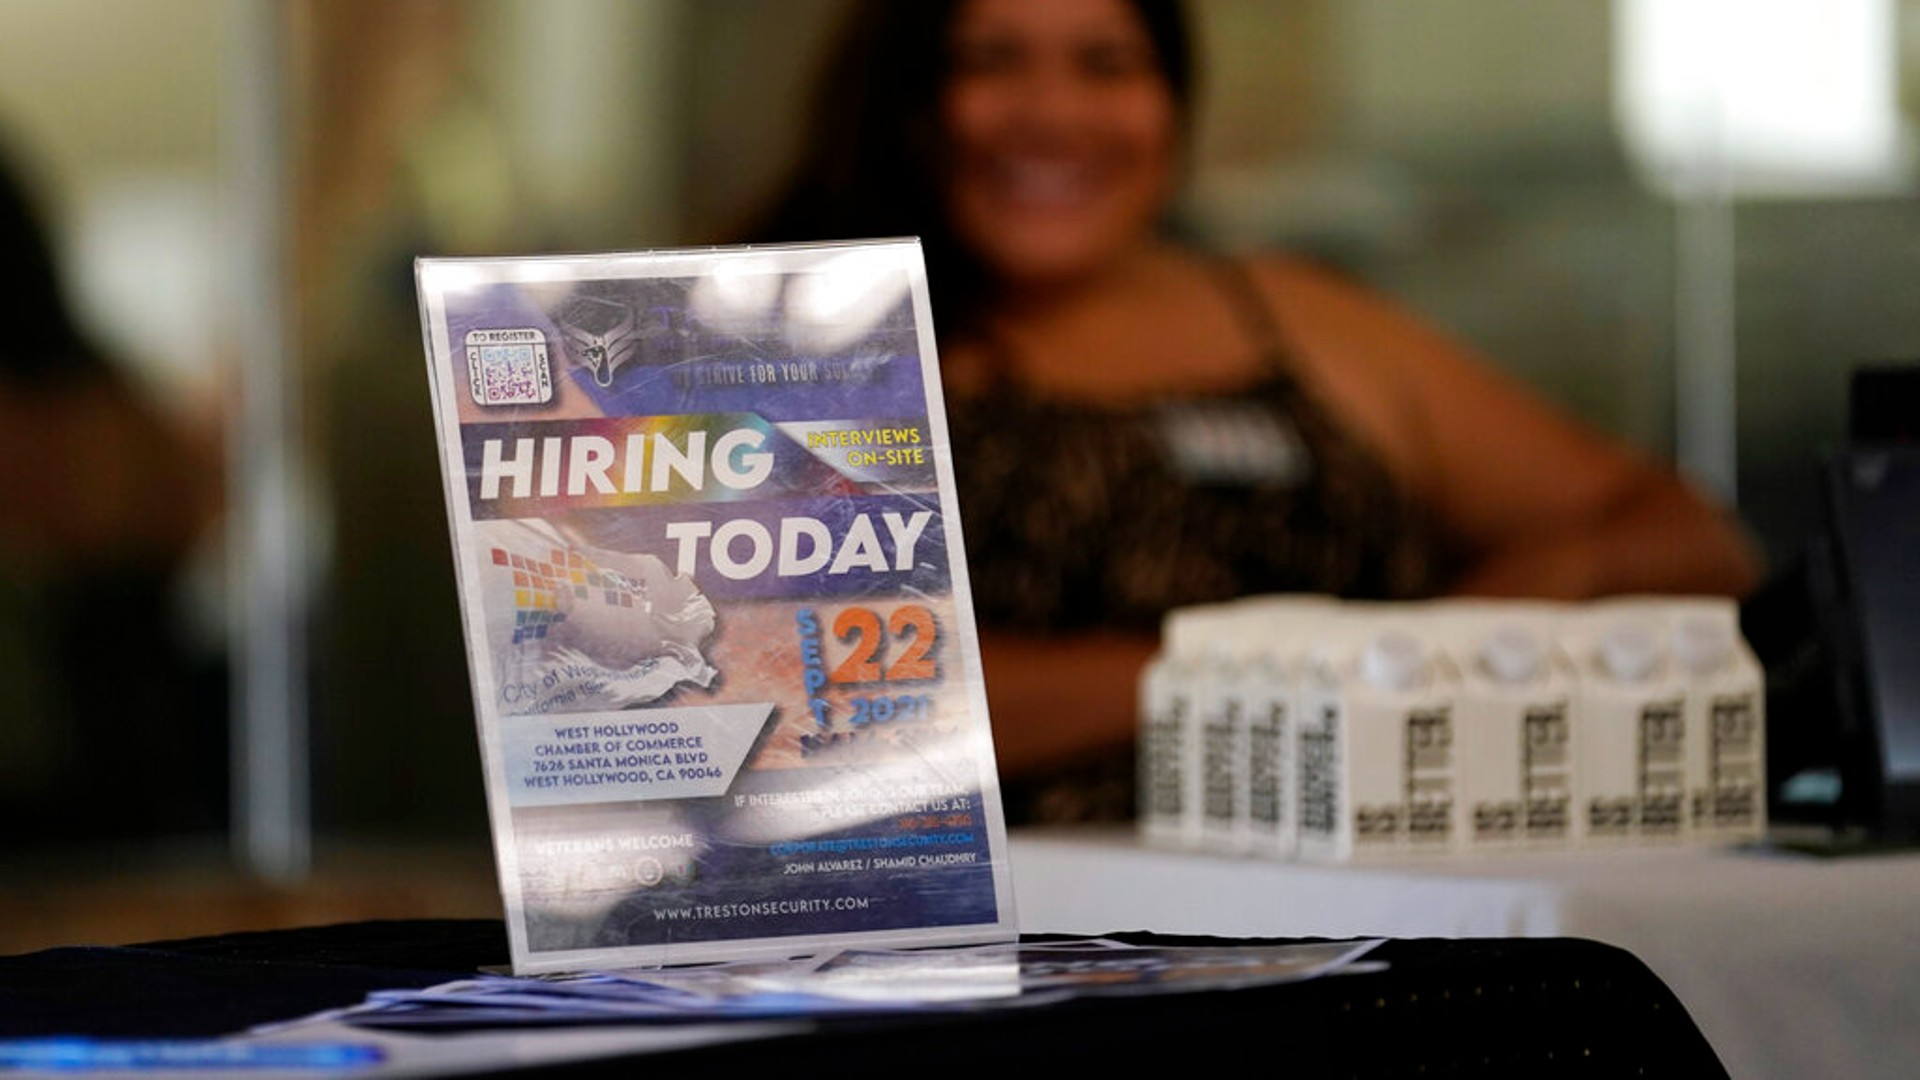 A hiring sign is placed at a booth for prospective employers during a job fair Wednesday, Sept. 22, 2021, in the West Hollywood section of Los Angeles. (AP Photo/Marcio Jose Sanchez)